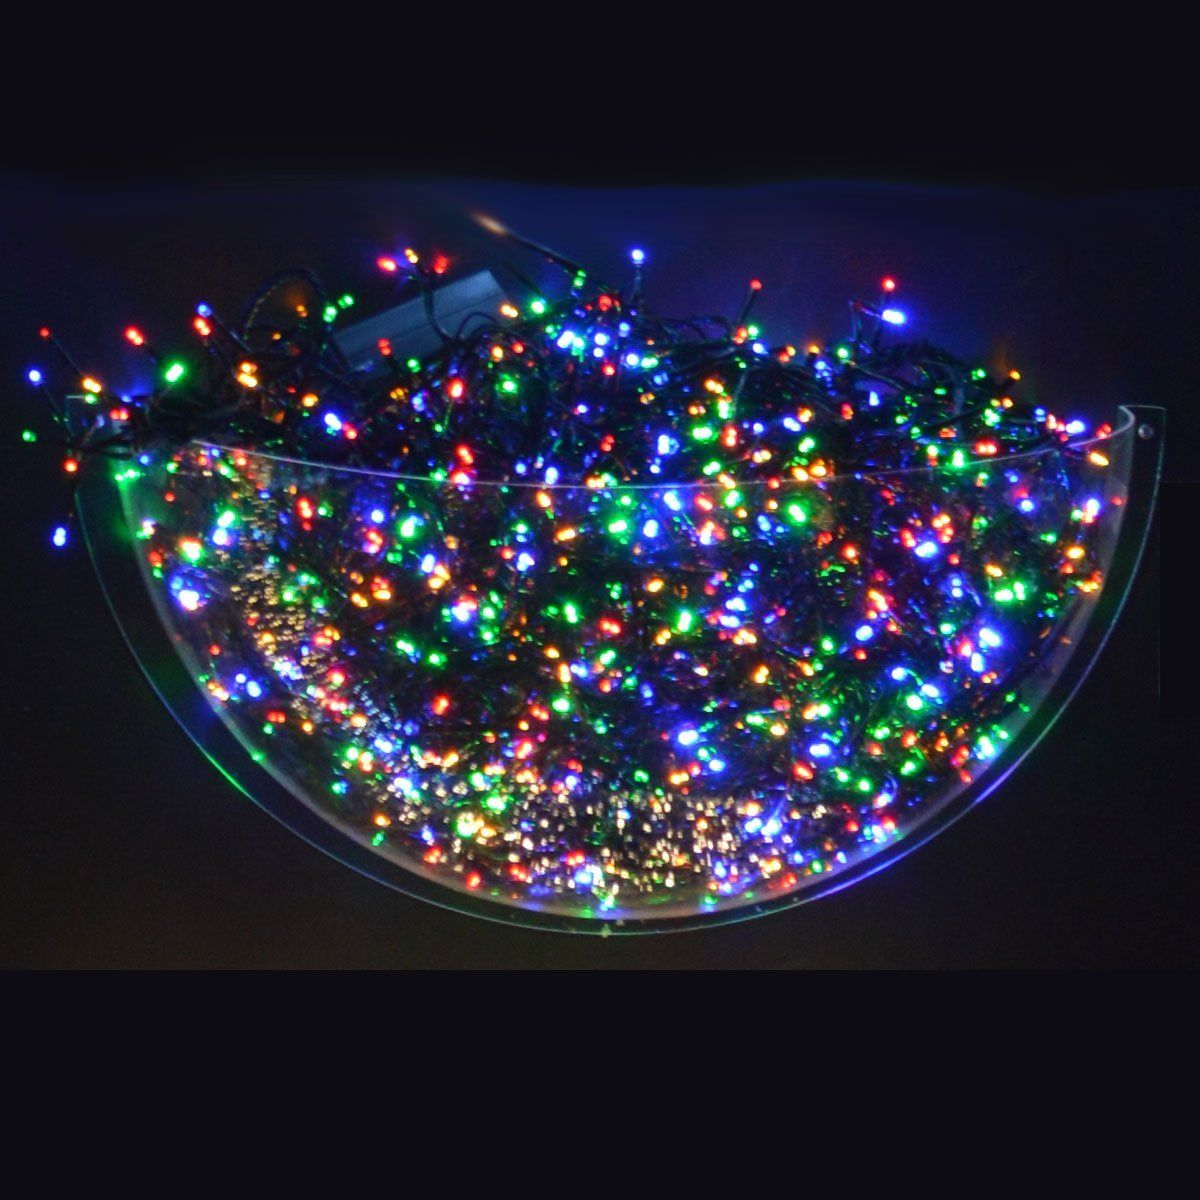 Kaemingk Outdoor Christmas Festive Multi Colour lights. Includes a ...